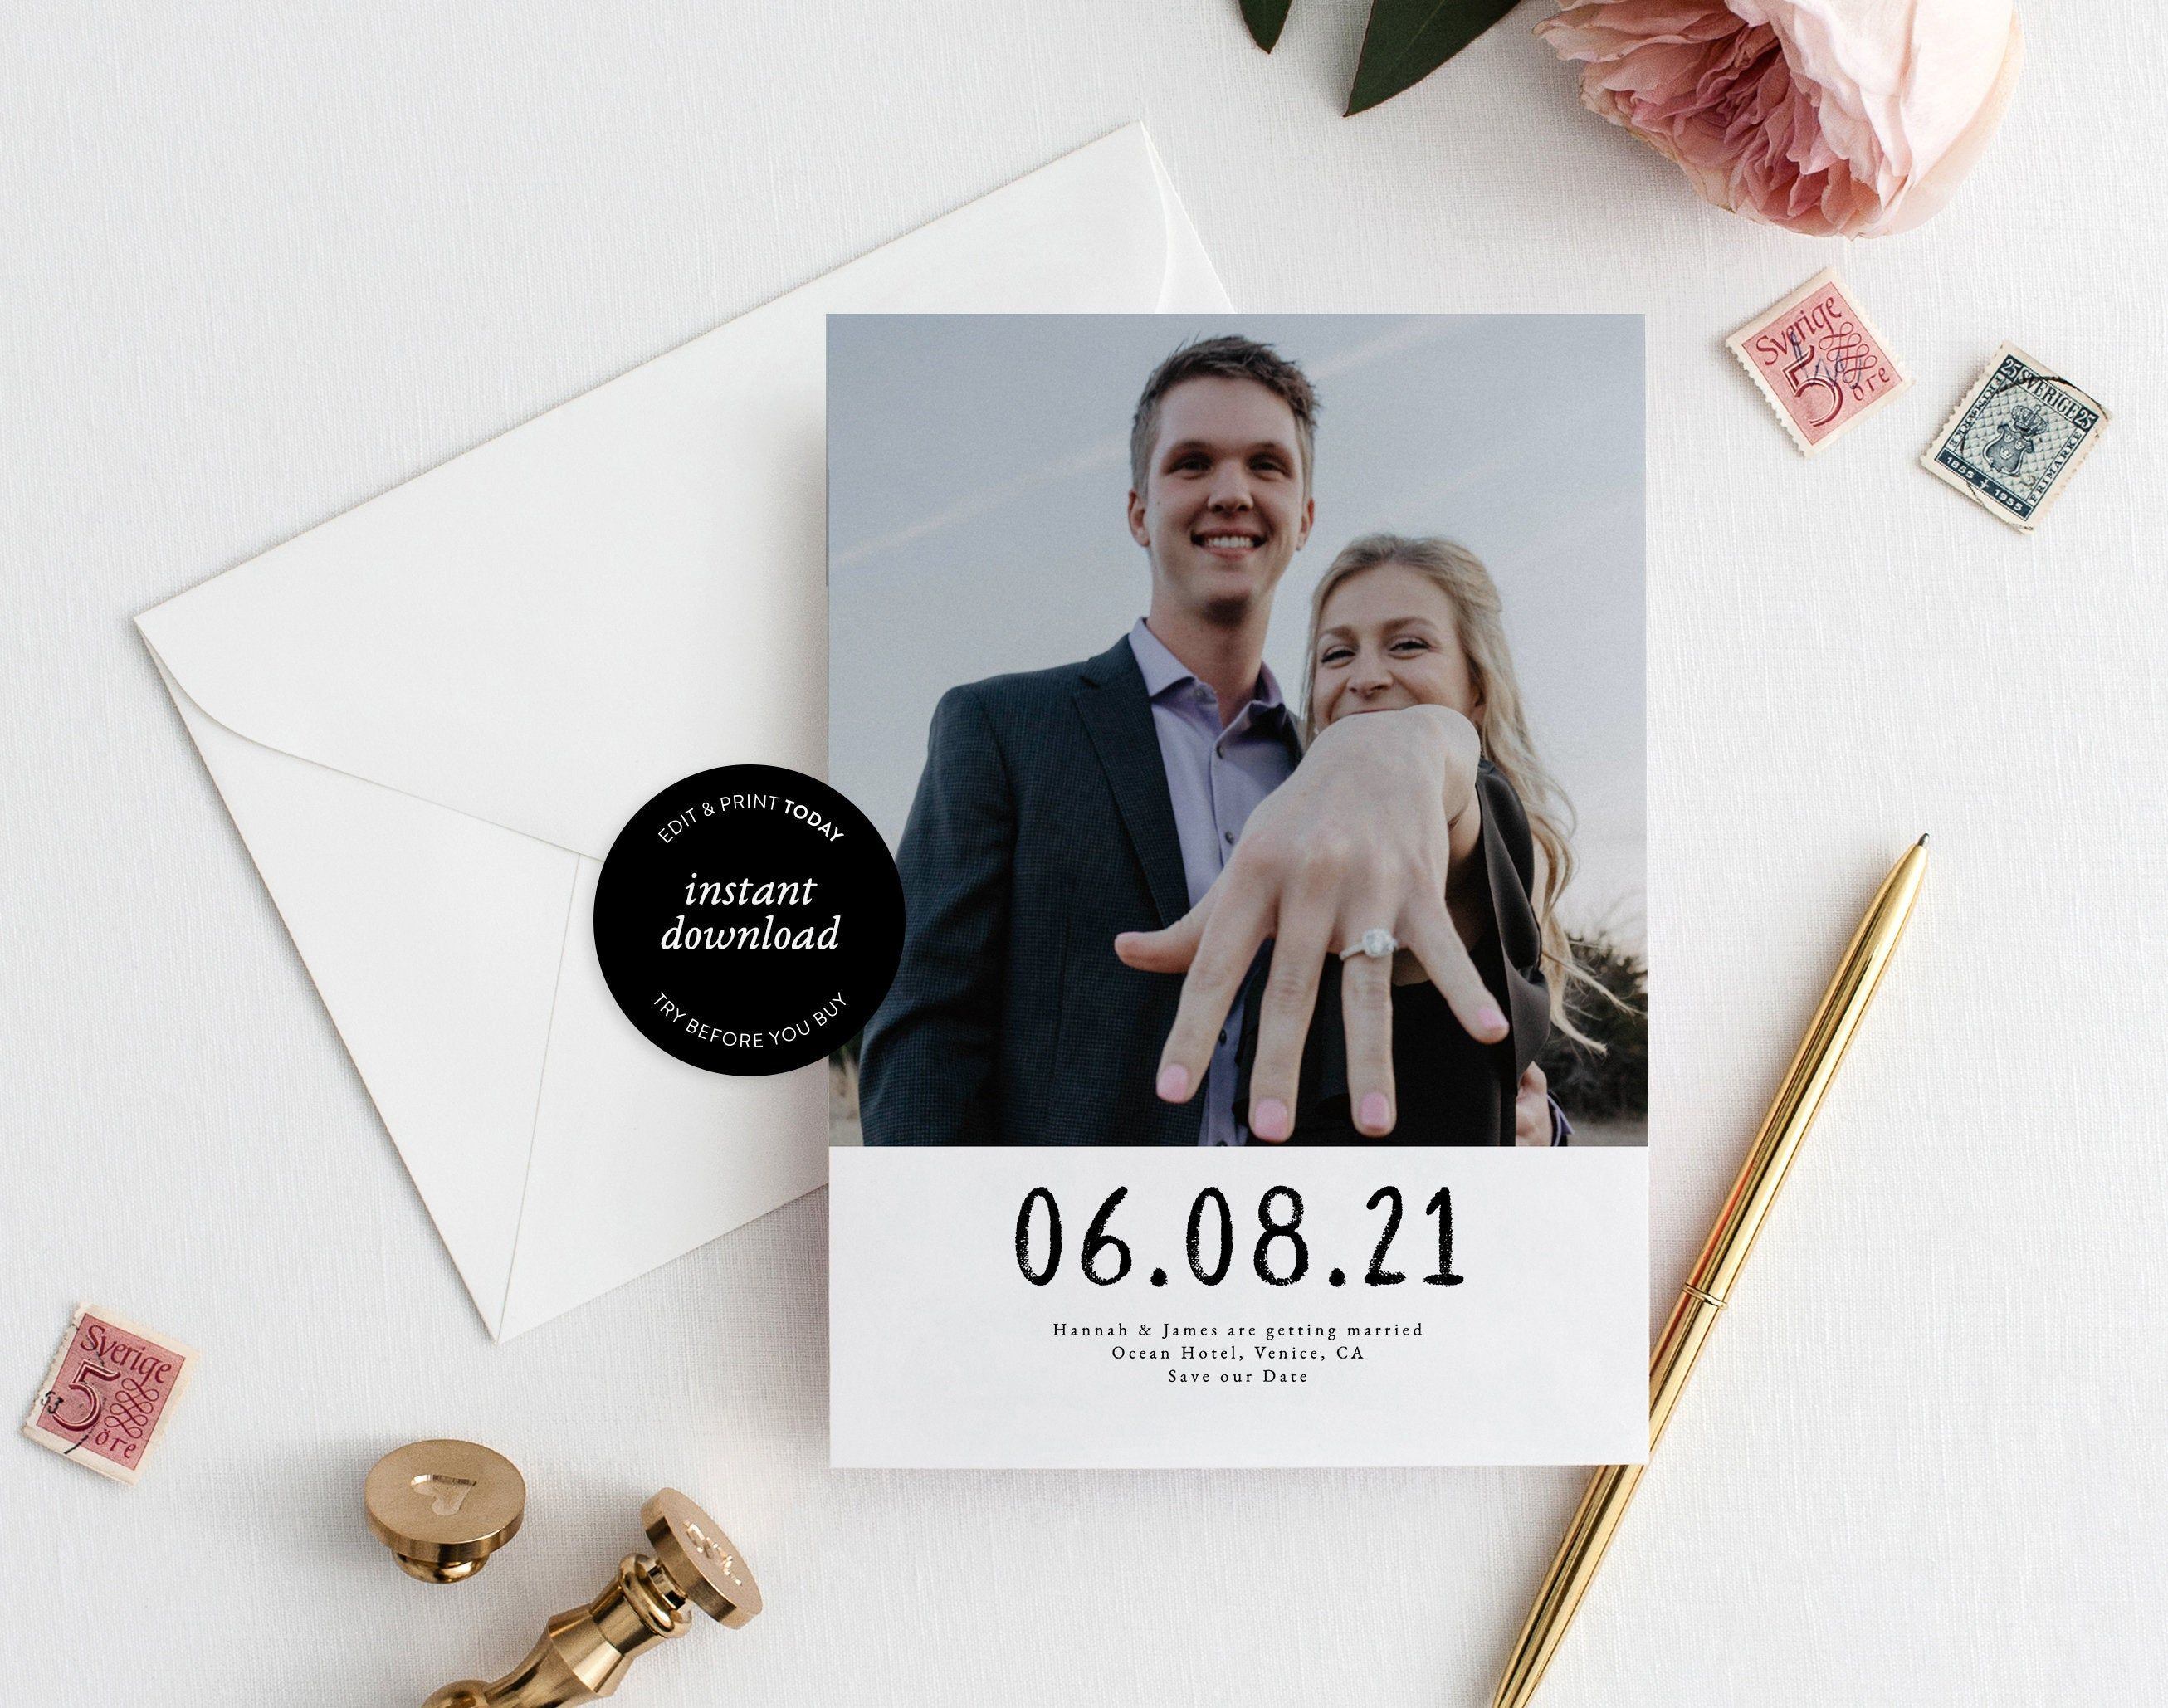 Minimalist Save The Date Template W Photo 100 Editable Etsy Wedding Announcements Templates Save The Date Save The Date Templates